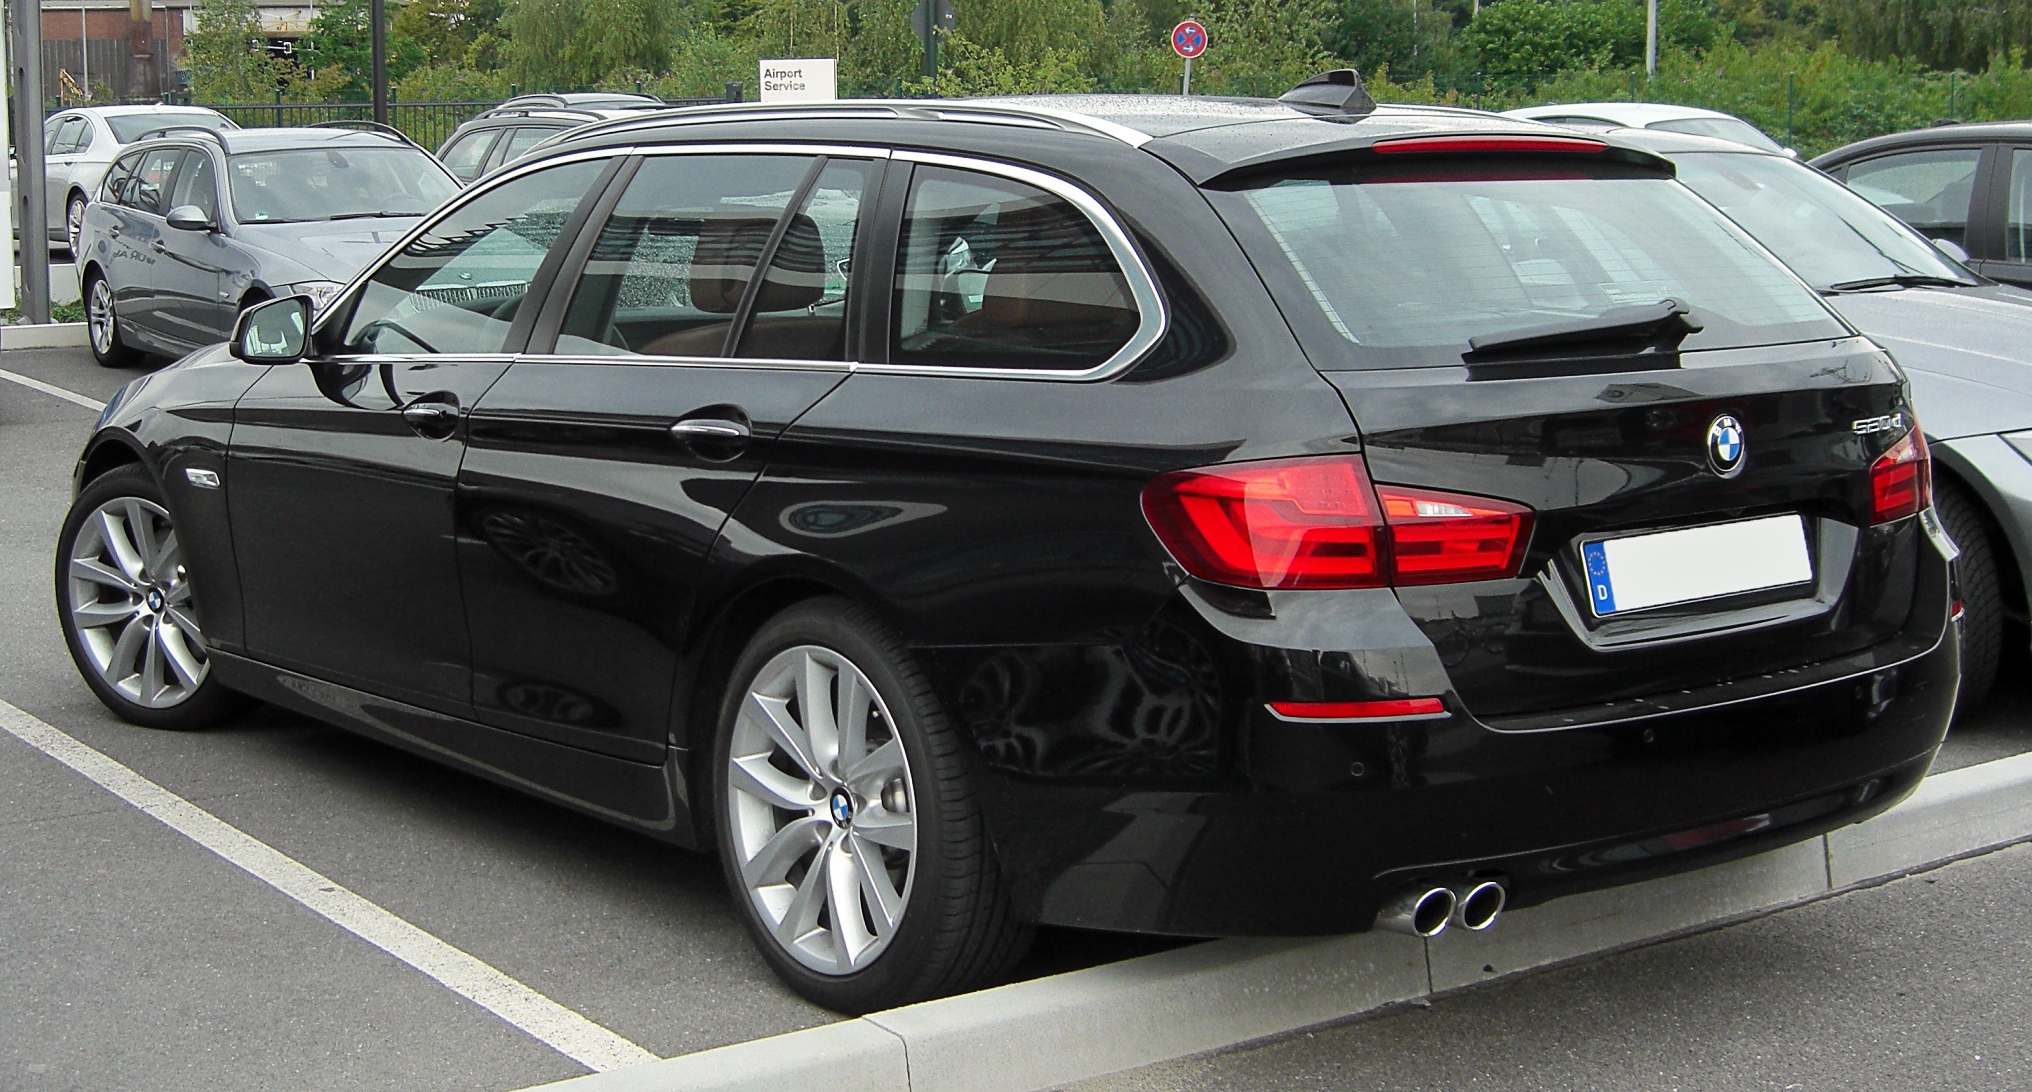 File:BMW 520d Touring (F11) rear 20100731 jpg - Wikimedia Commons